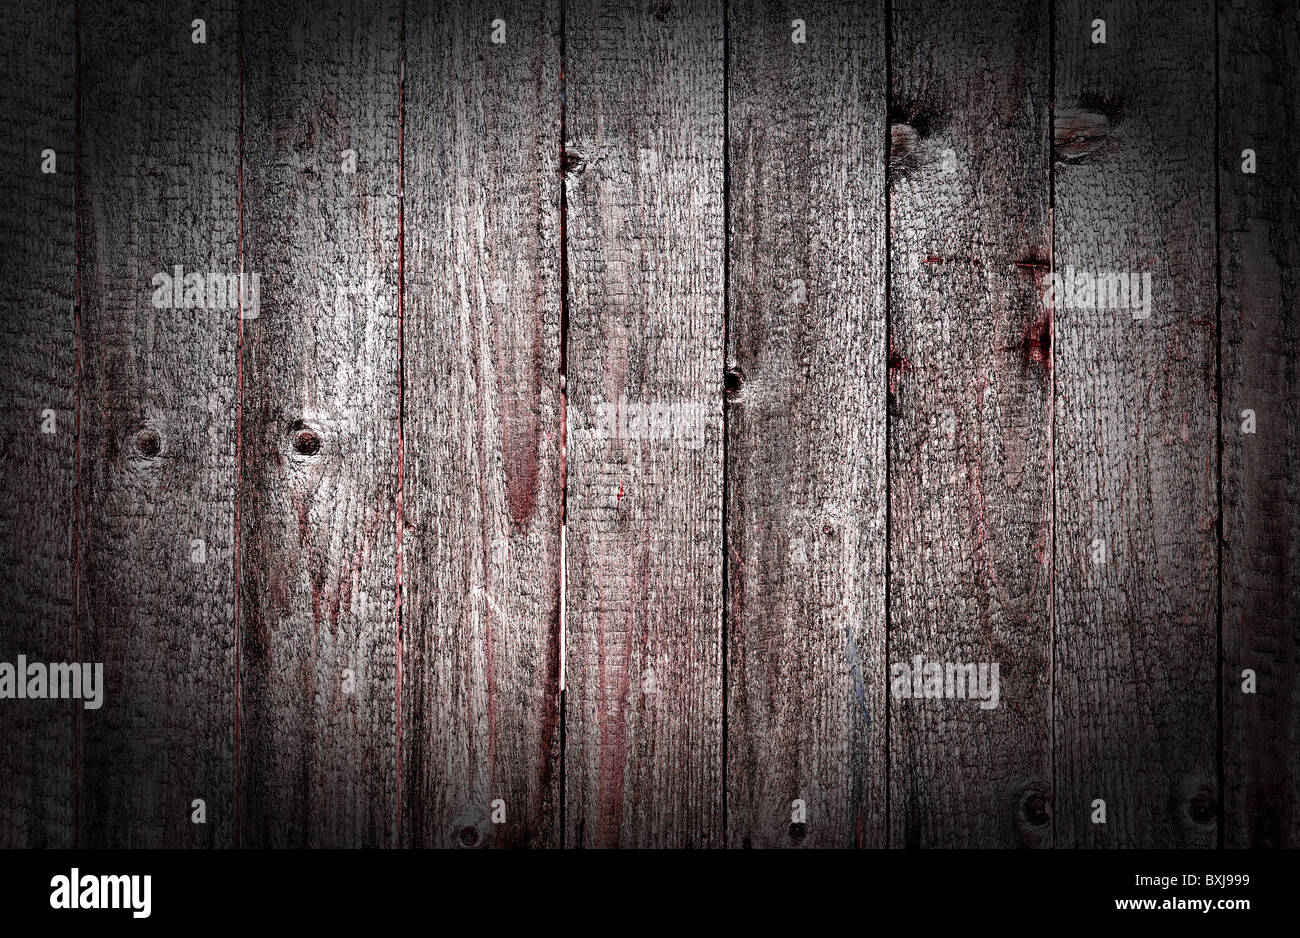 Obsolete wooden rough planks - Stock Image